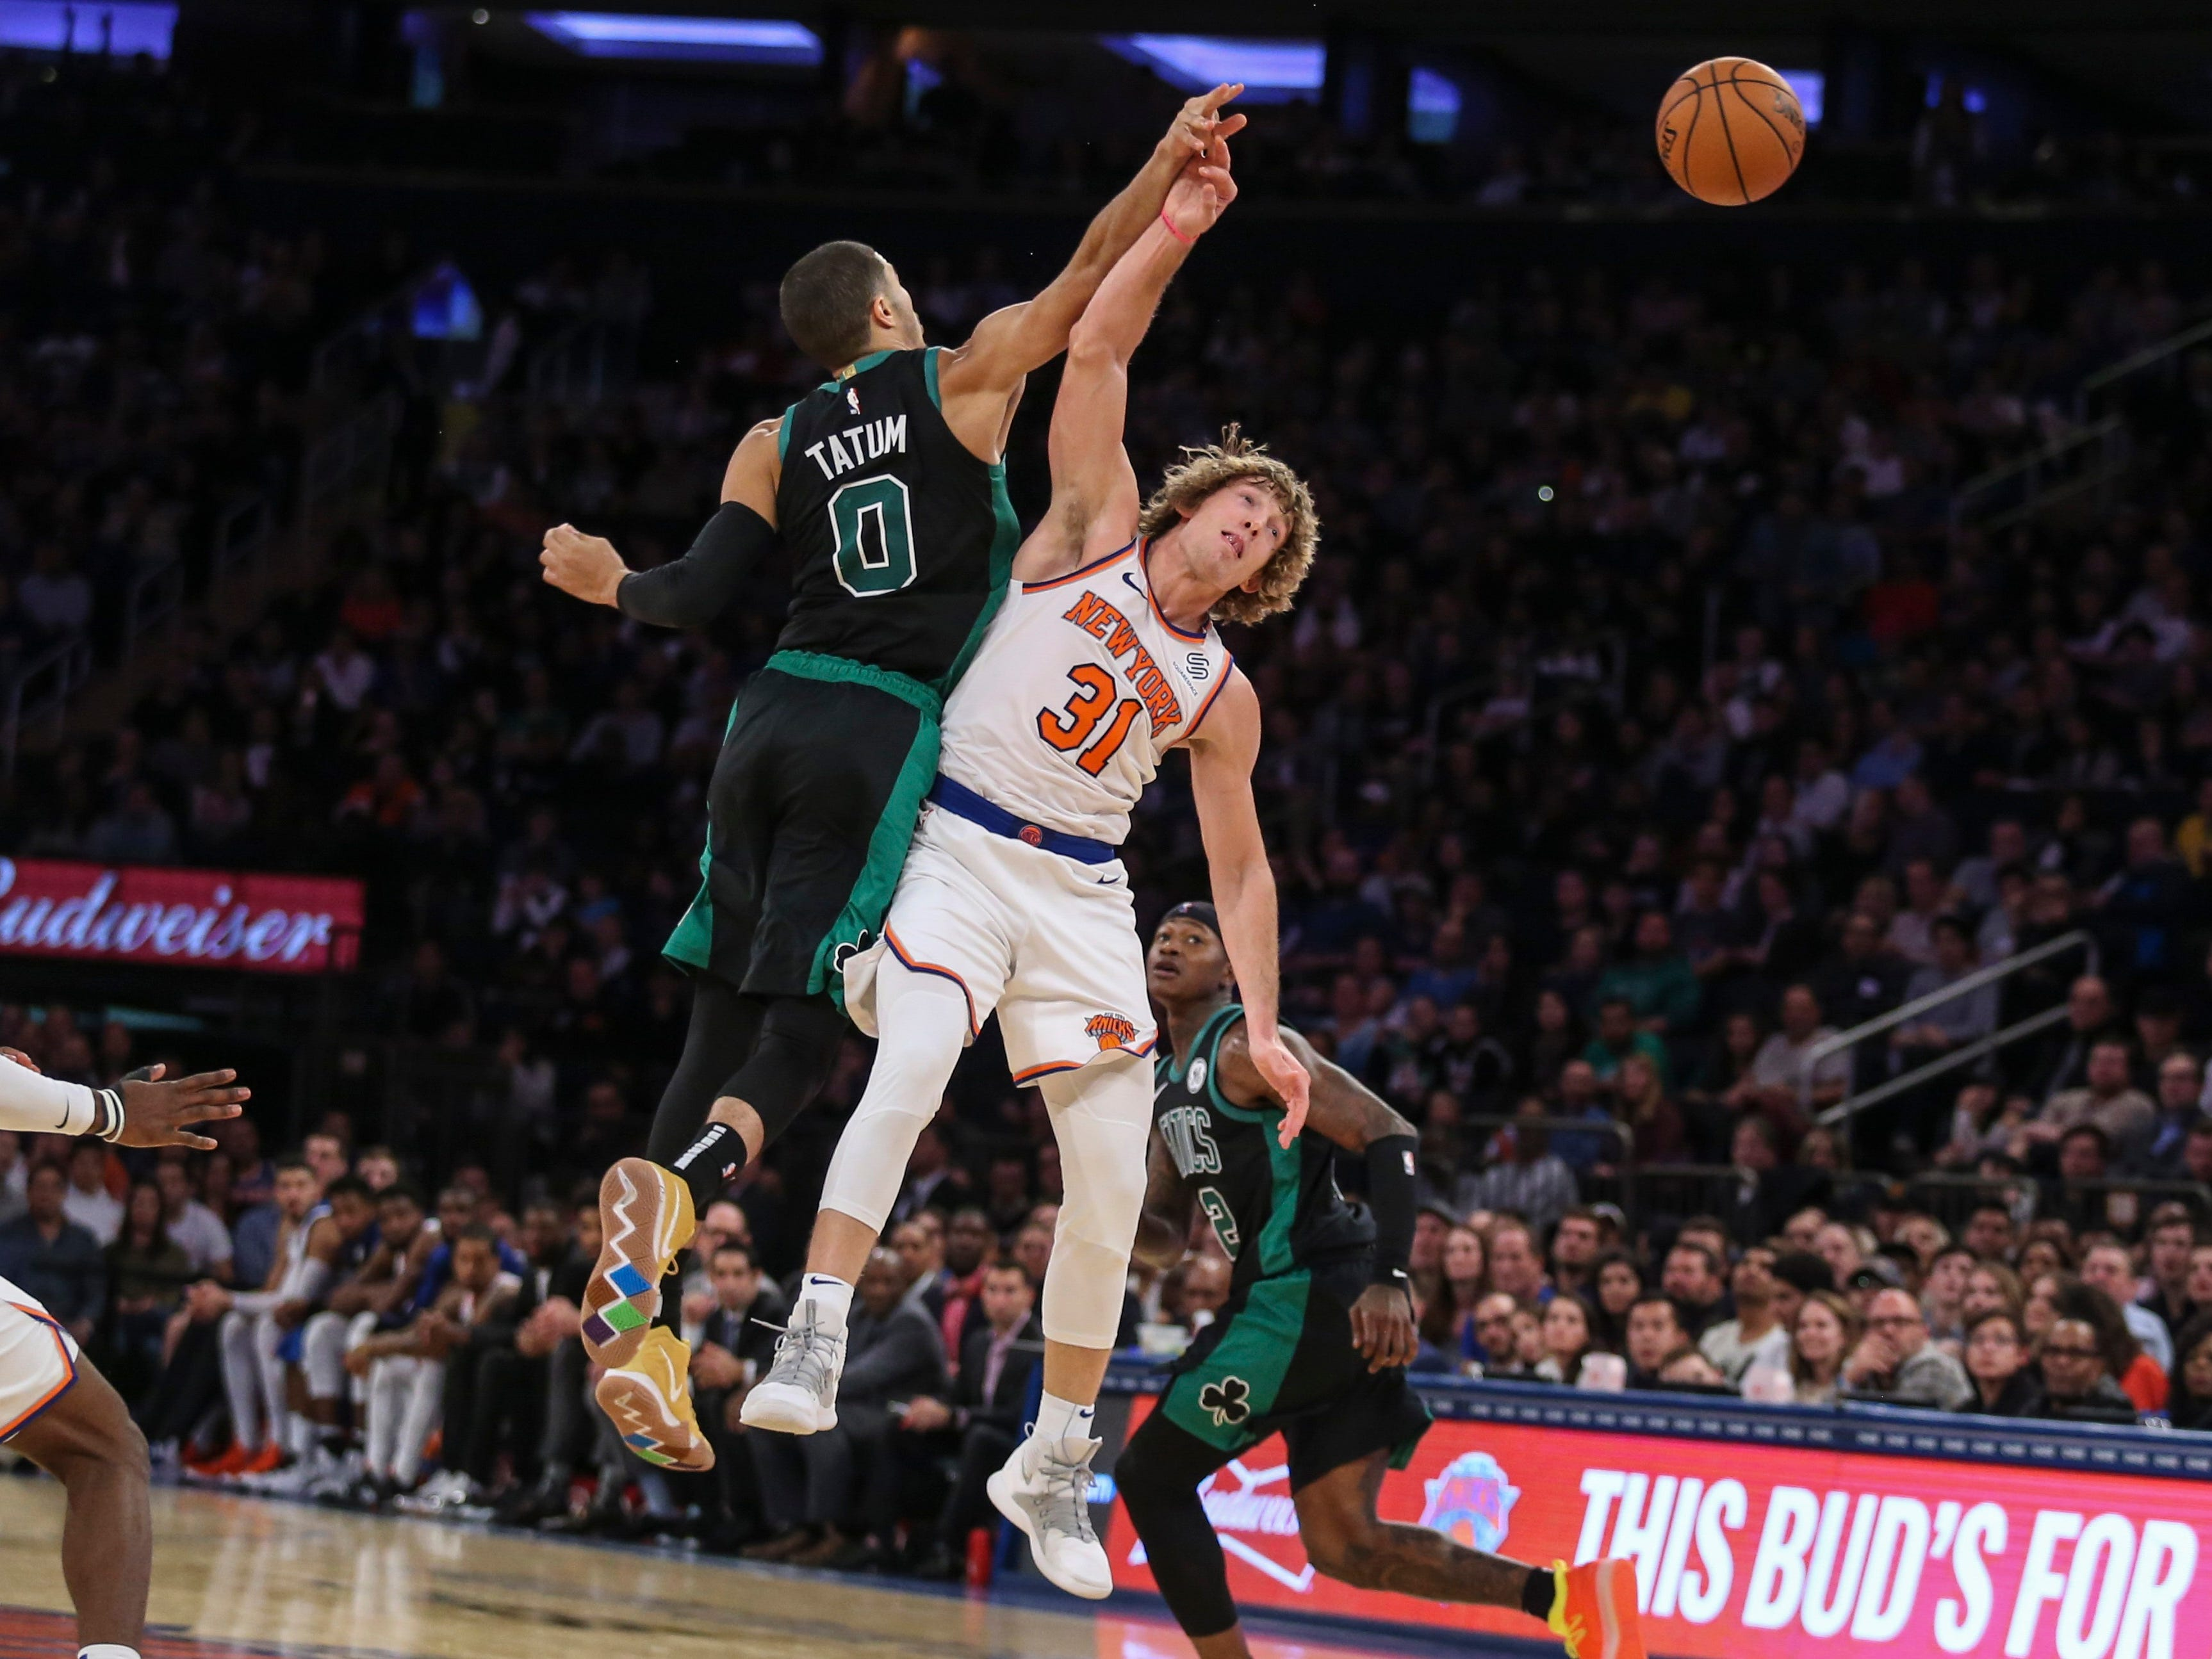 Oct. 20: Celtics forward Jayson Tatum (0) collides with Knicks guard Ron Baker (31) while chasing after a loose ball.